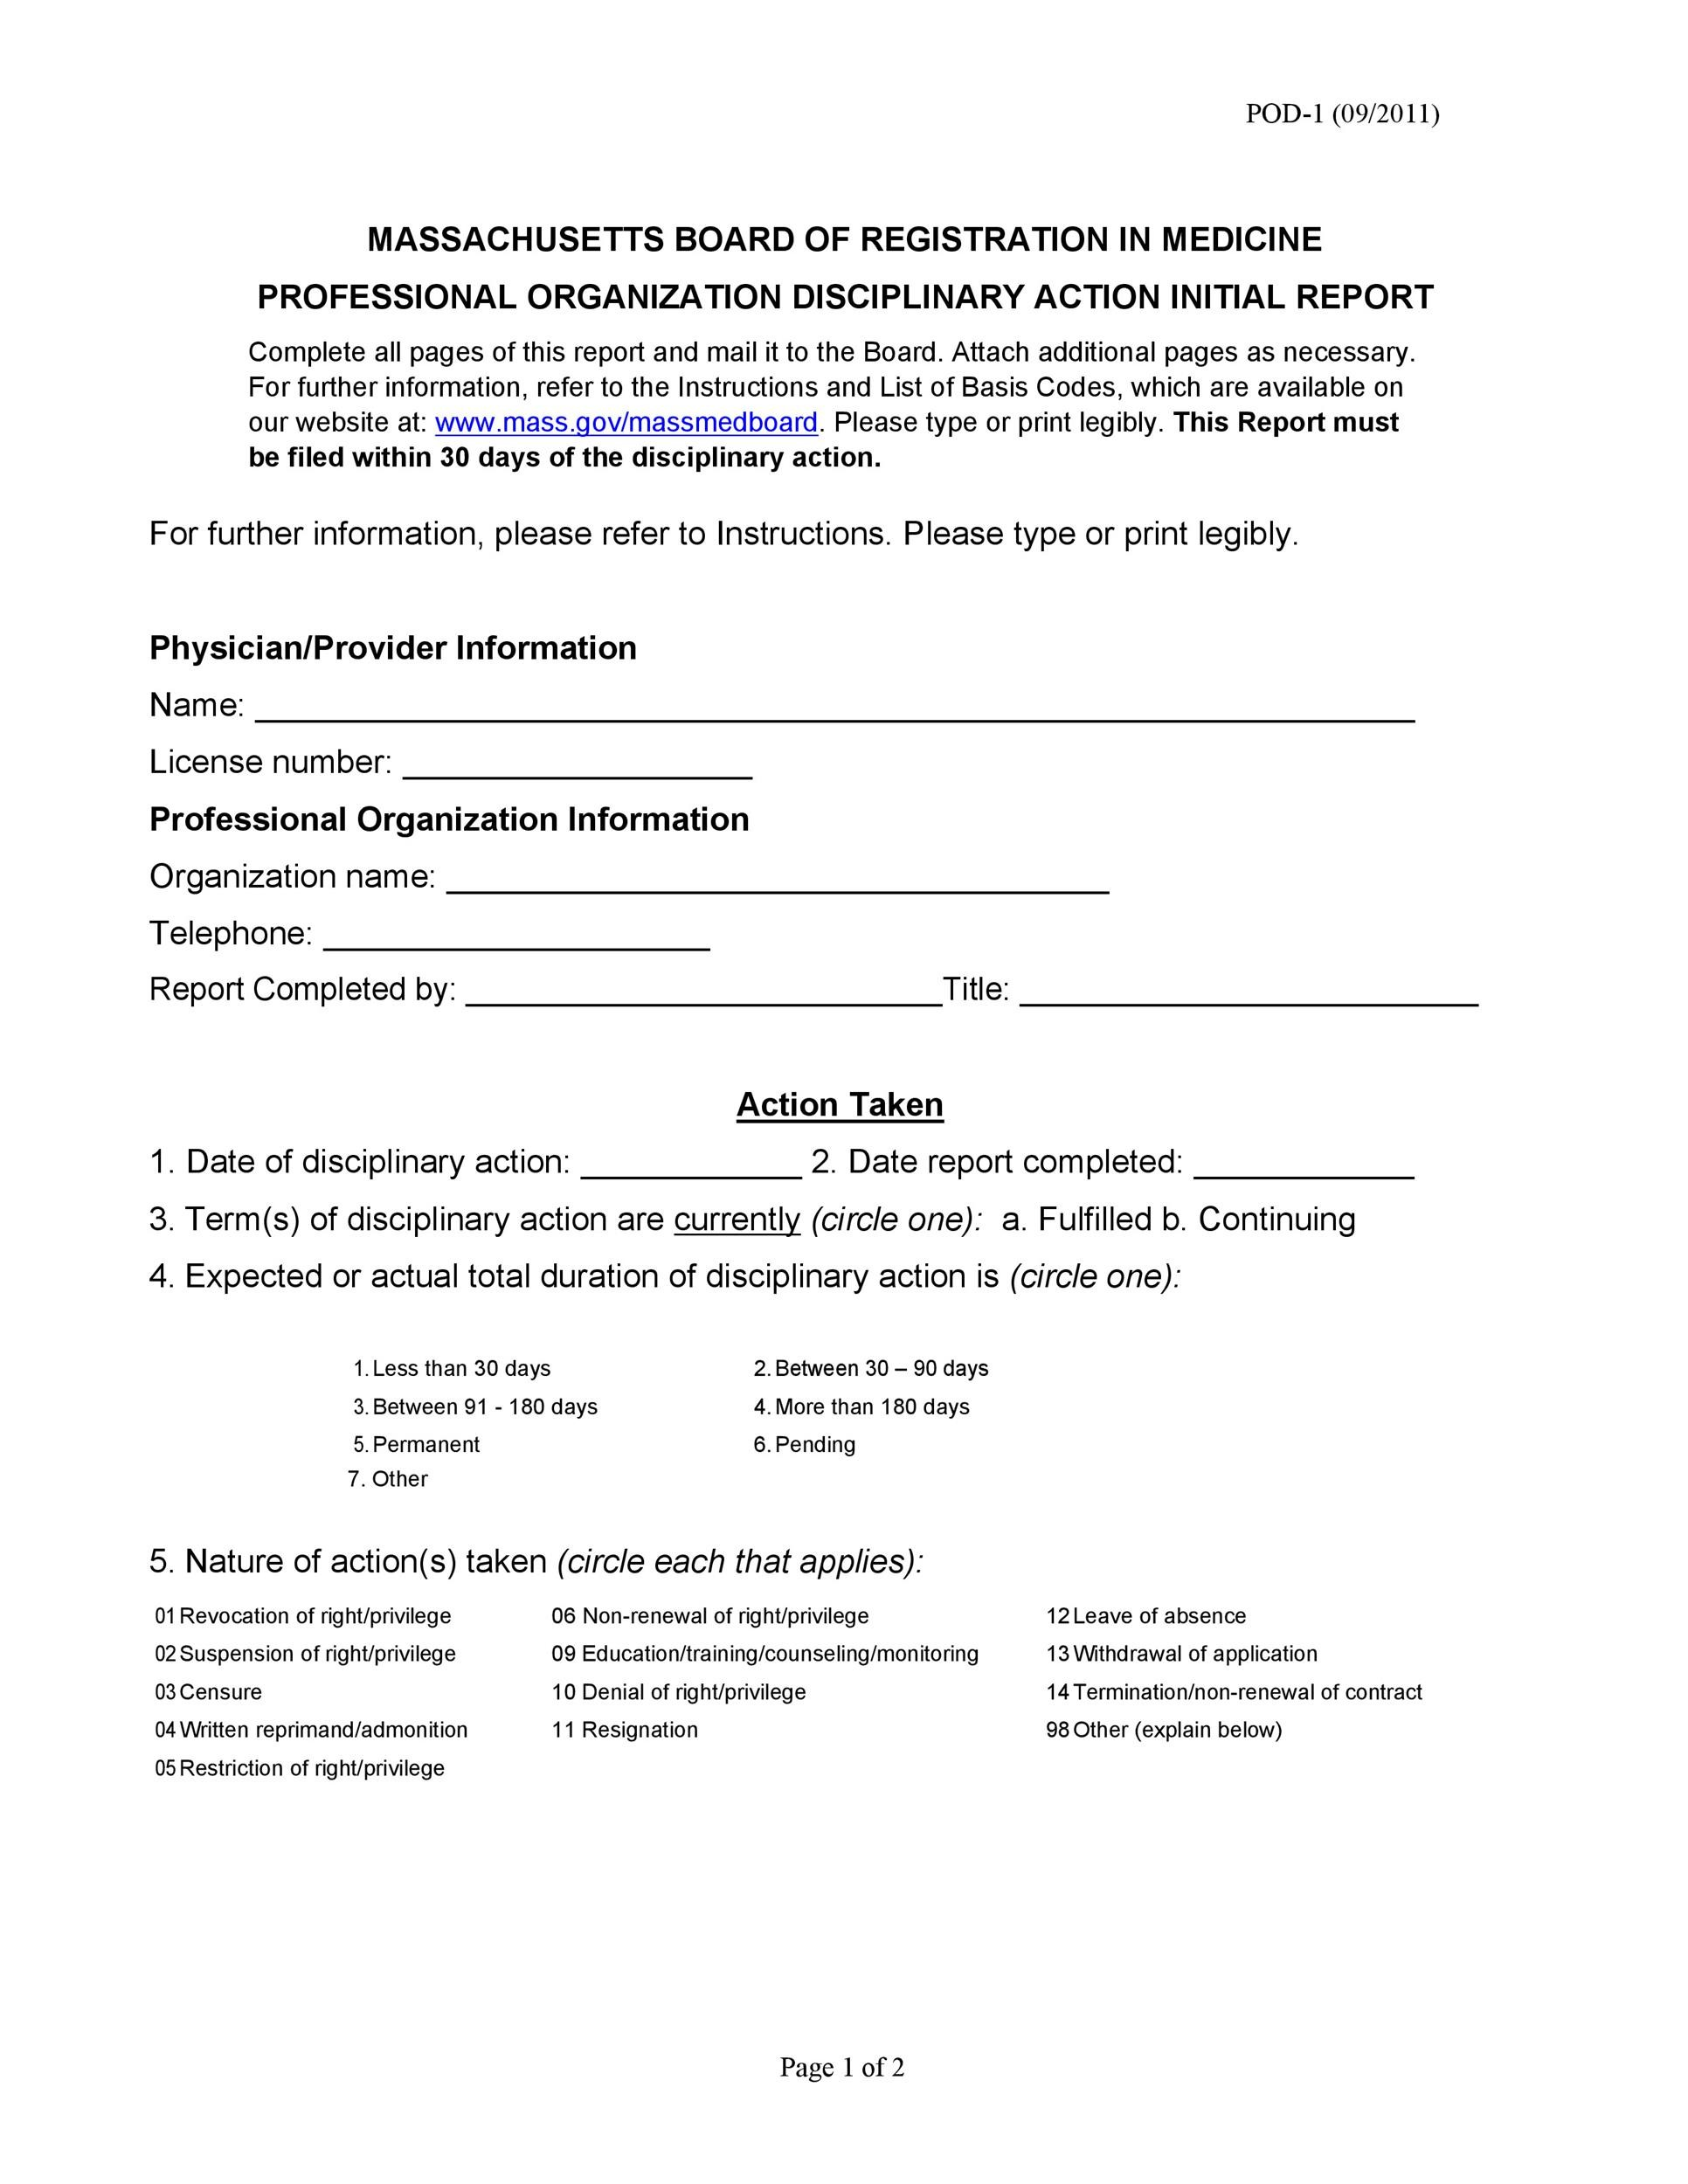 Free Disciplinary Action Form 19